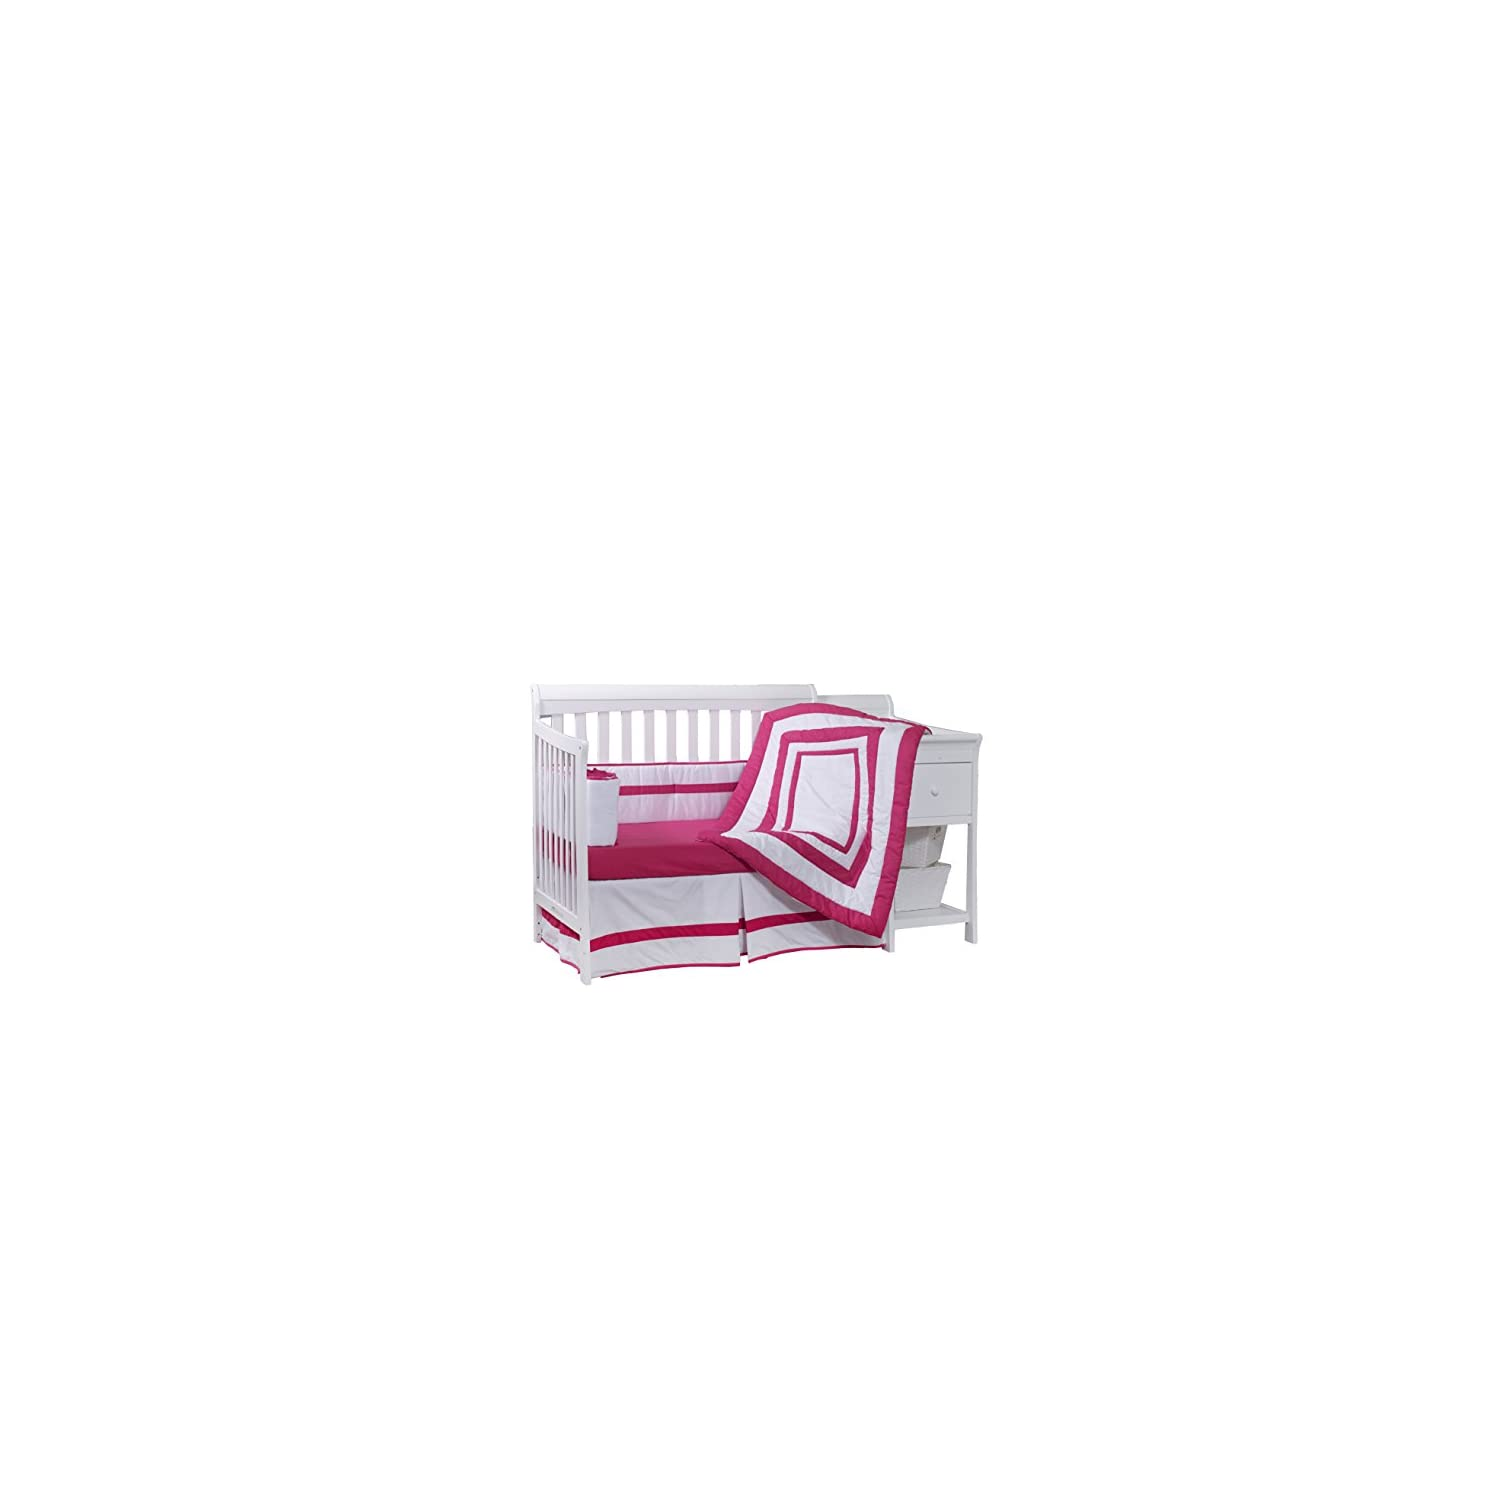 Baby Doll Bedding Modern Hotel Style Crib Bedding Set, Hot Pink